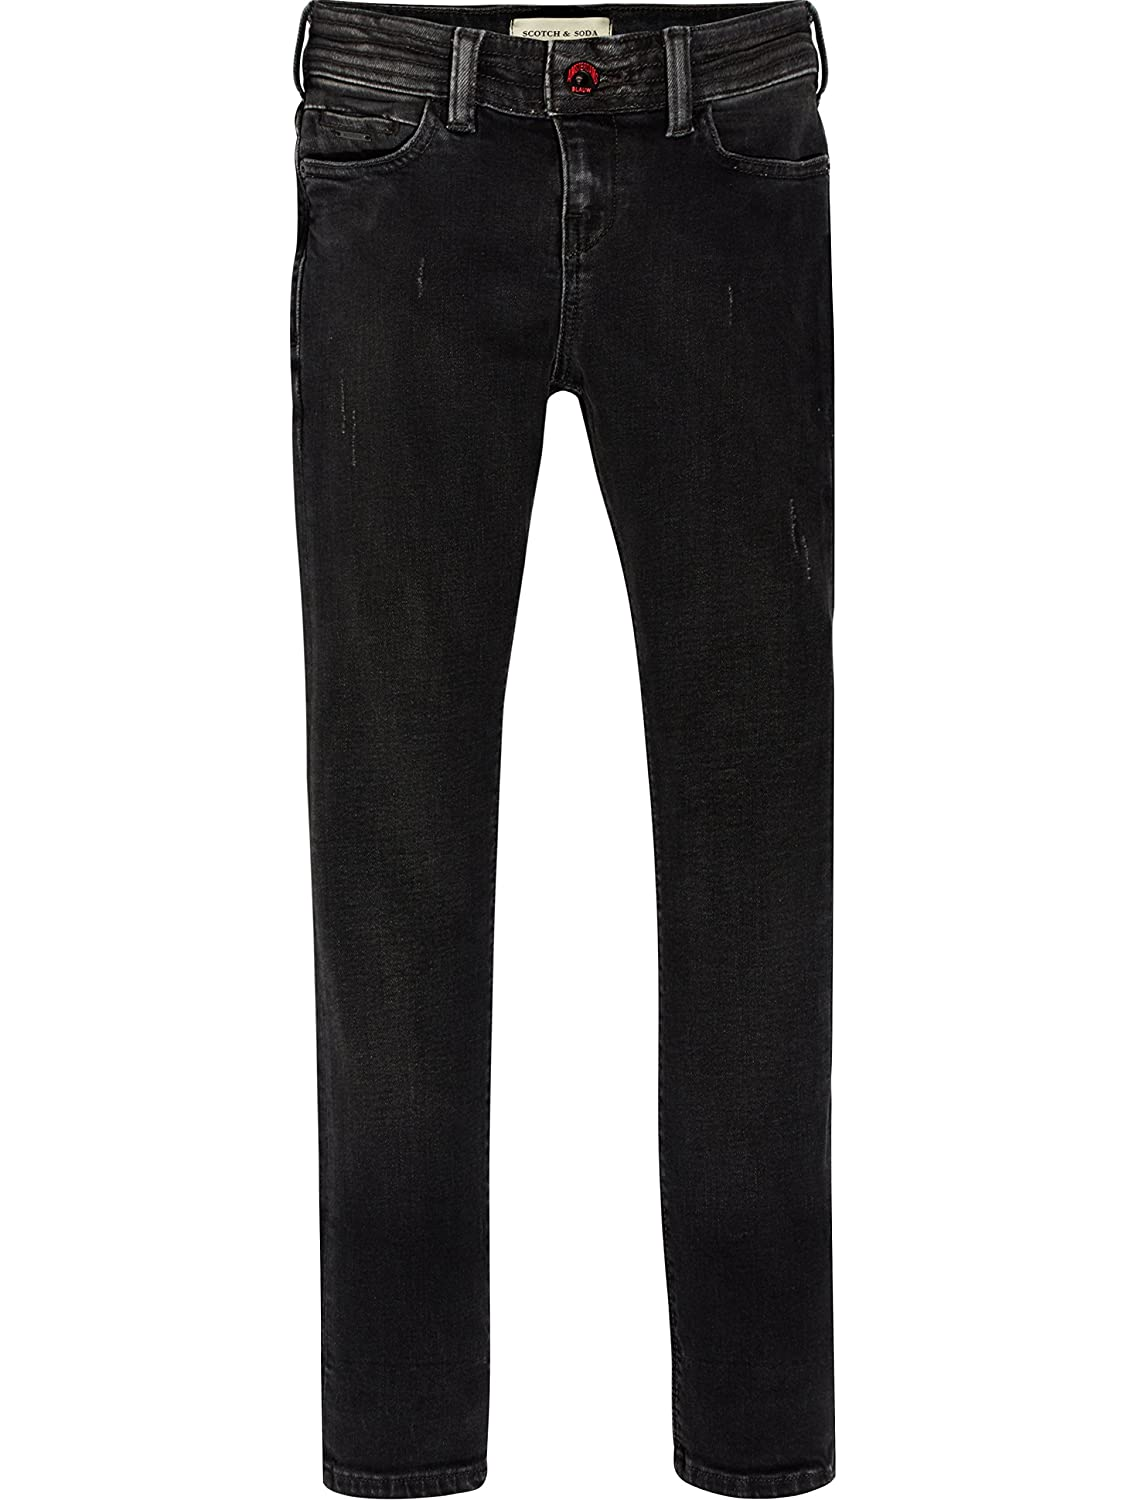 Scotch & Soda Seasonal Skinny-Black Jack, Jeans Bambino Nero 1817 104 Scotch & Soda Shrunk 143141